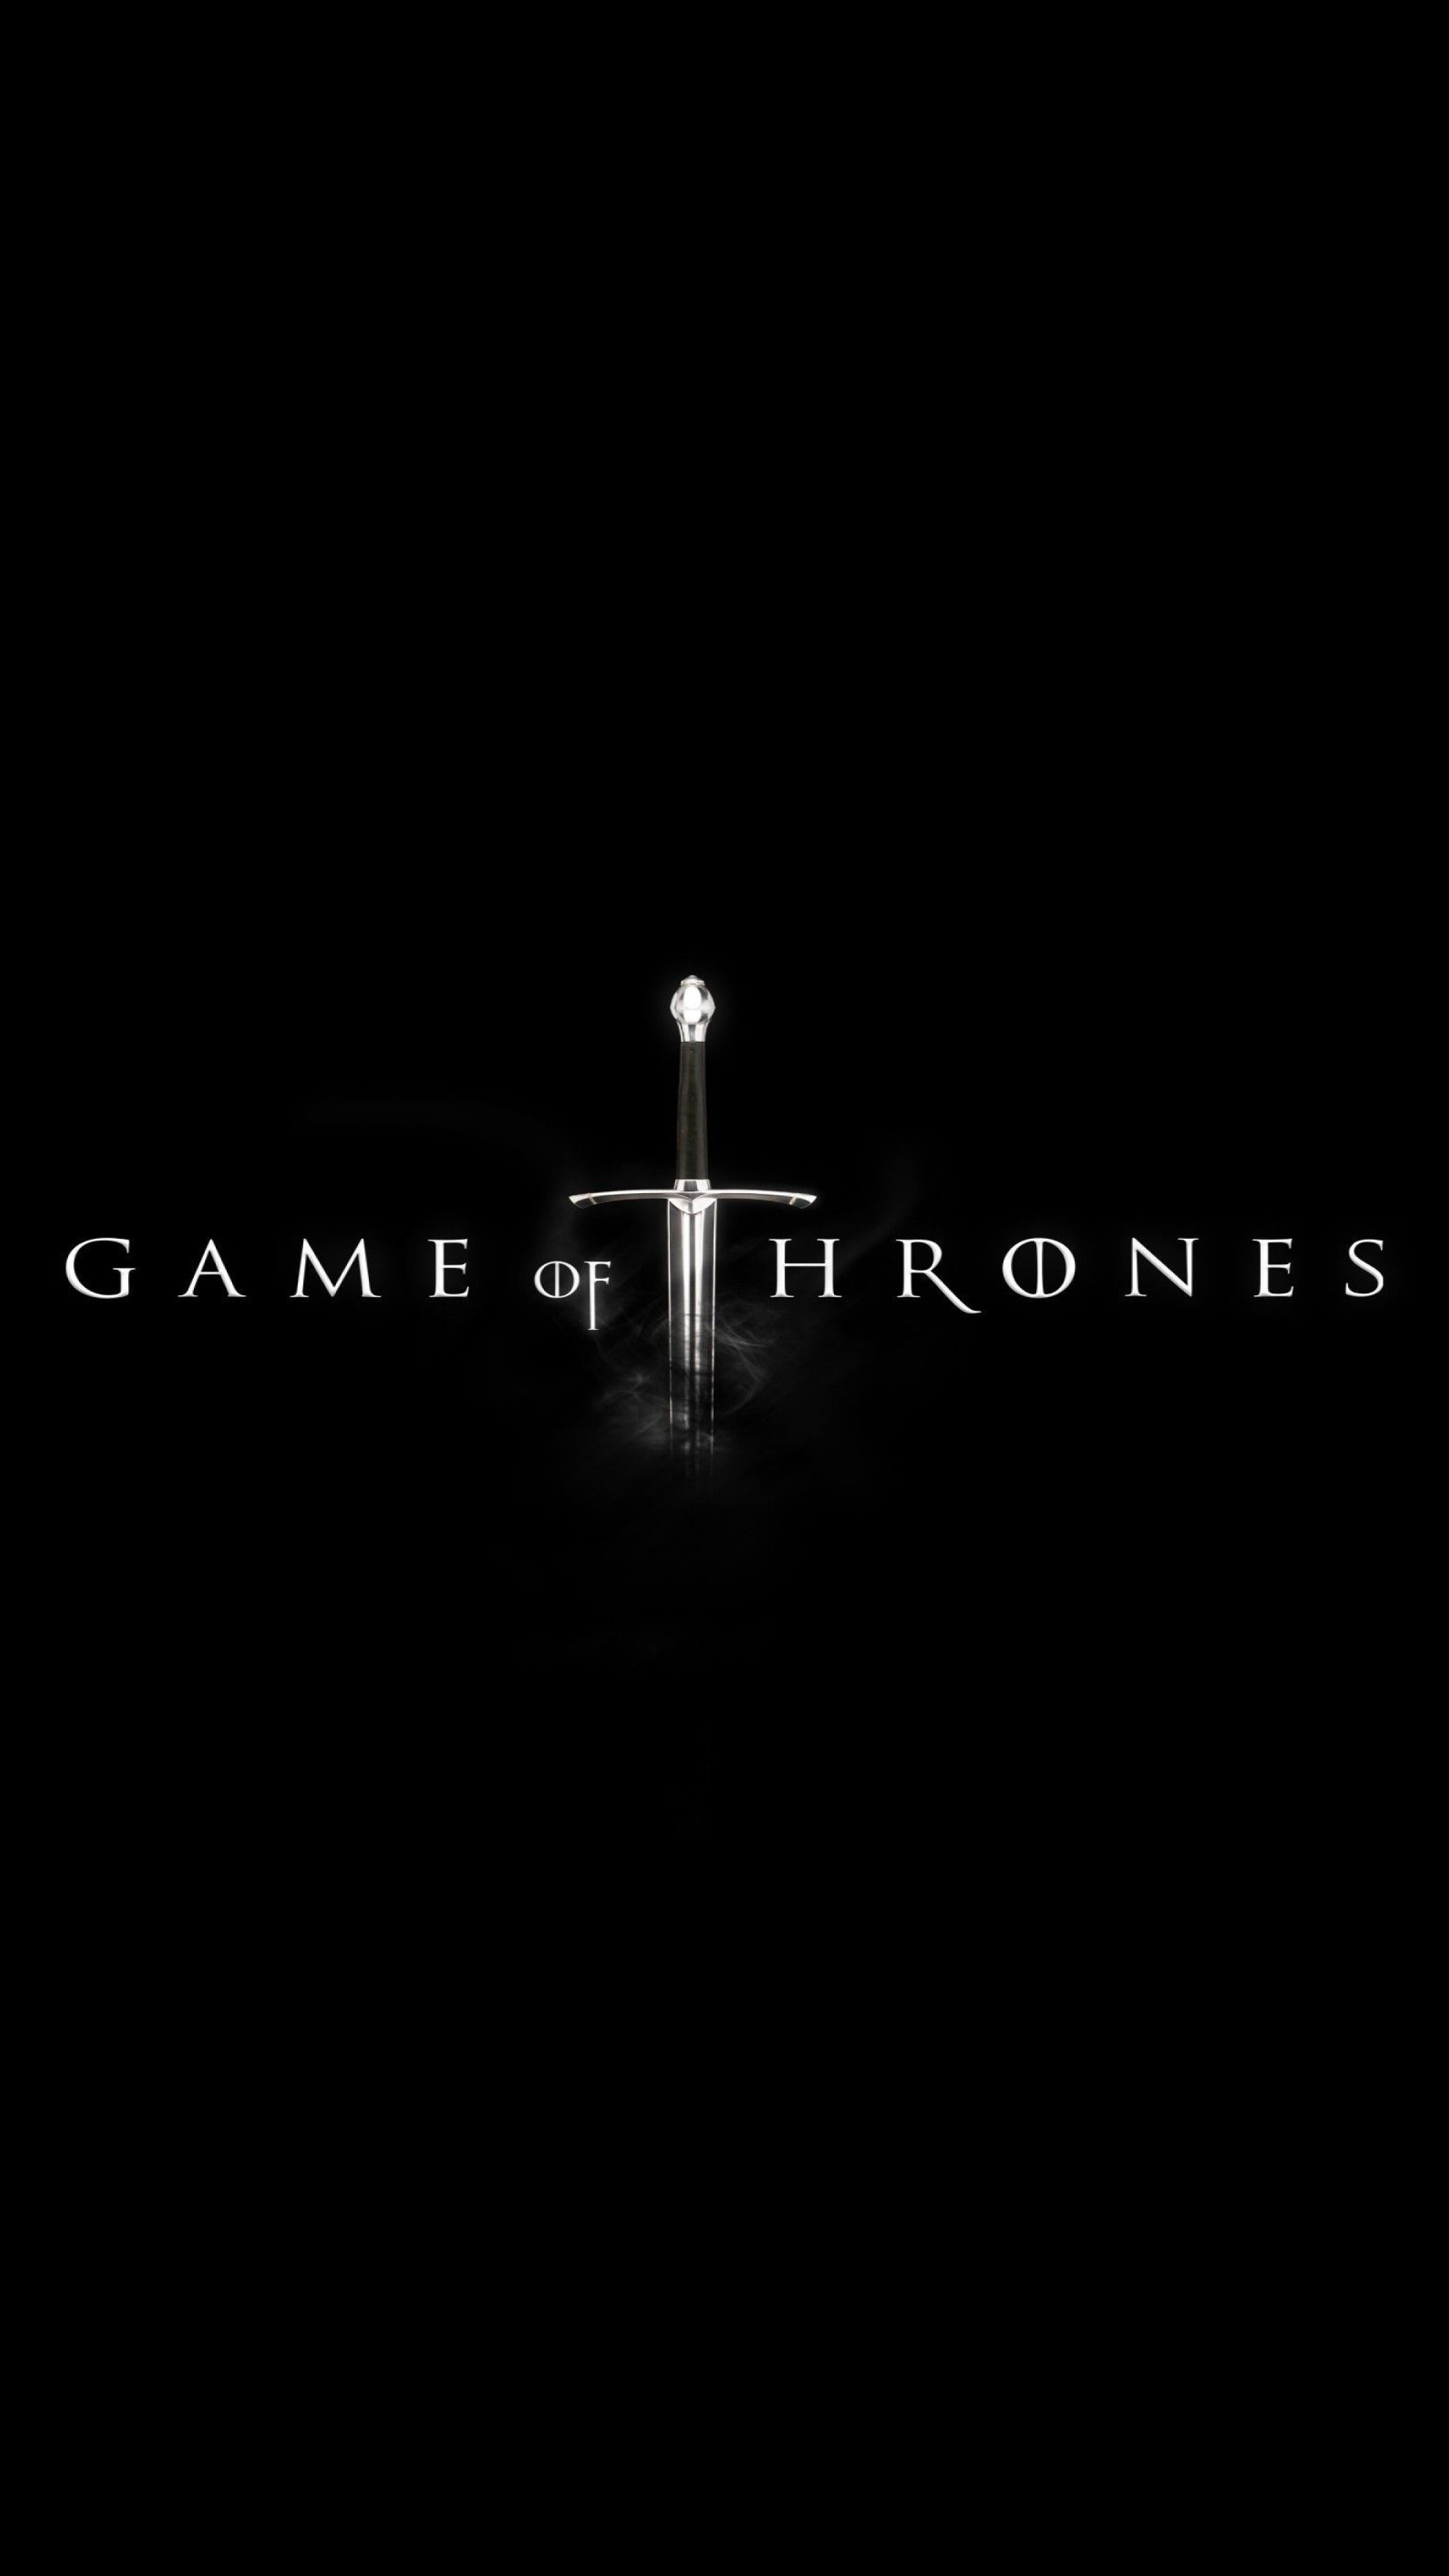 Game Of Thrones Sword Best Htc One Wallpapers